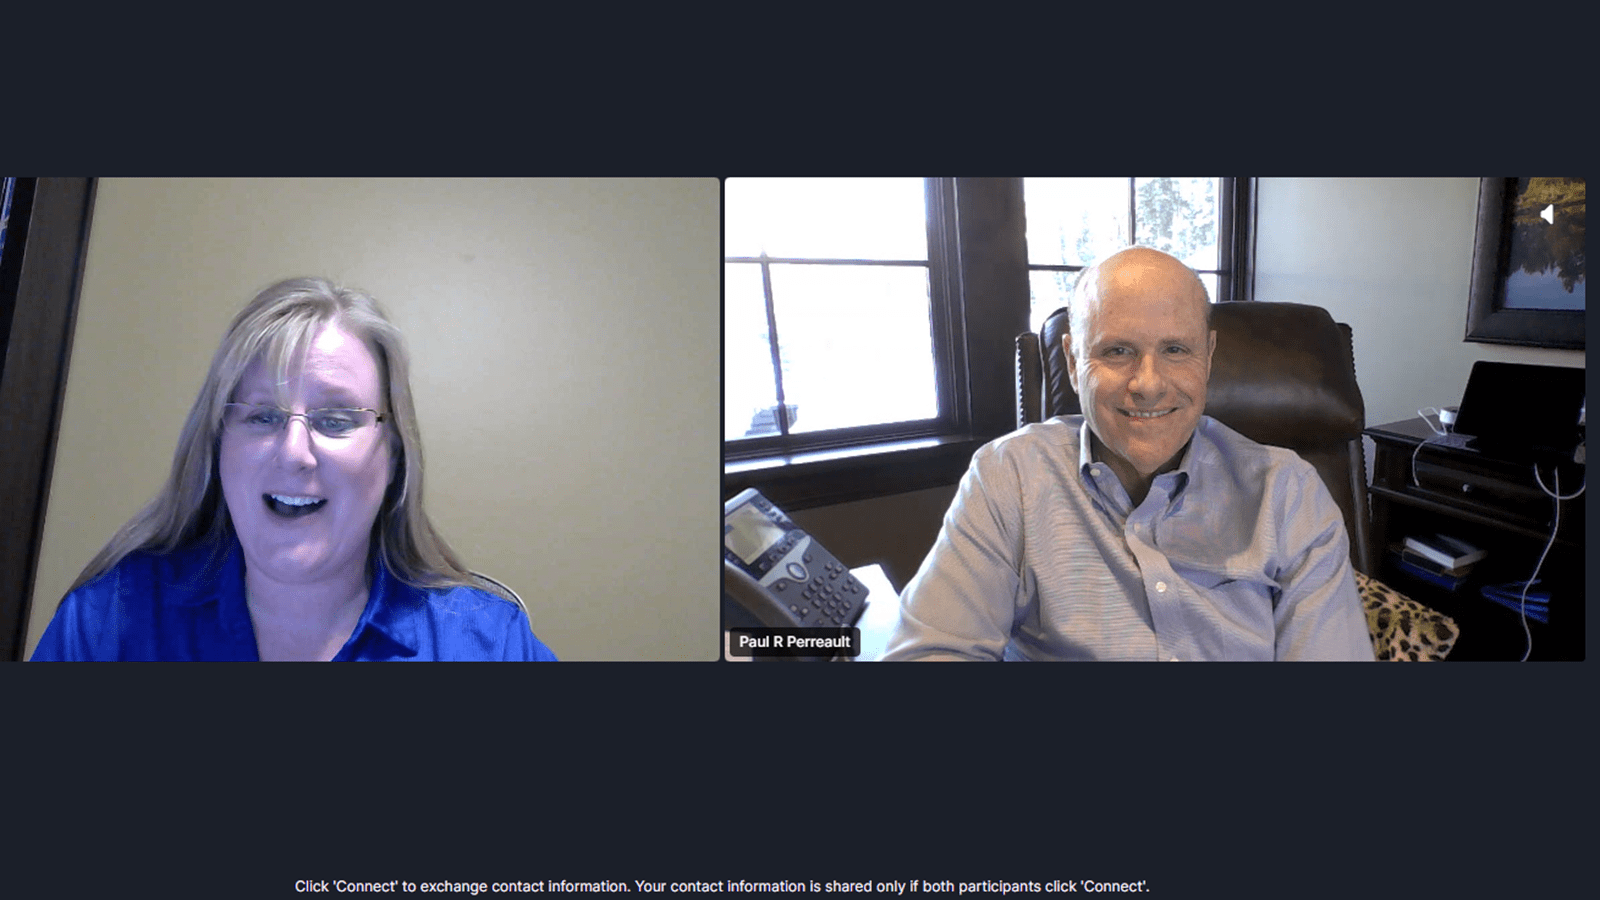 Kelli Klee, Senior Talent Development Specialist, reacts after getting randomly matched with CSL Limited CEO Paul Perreault during a virtual networking session.